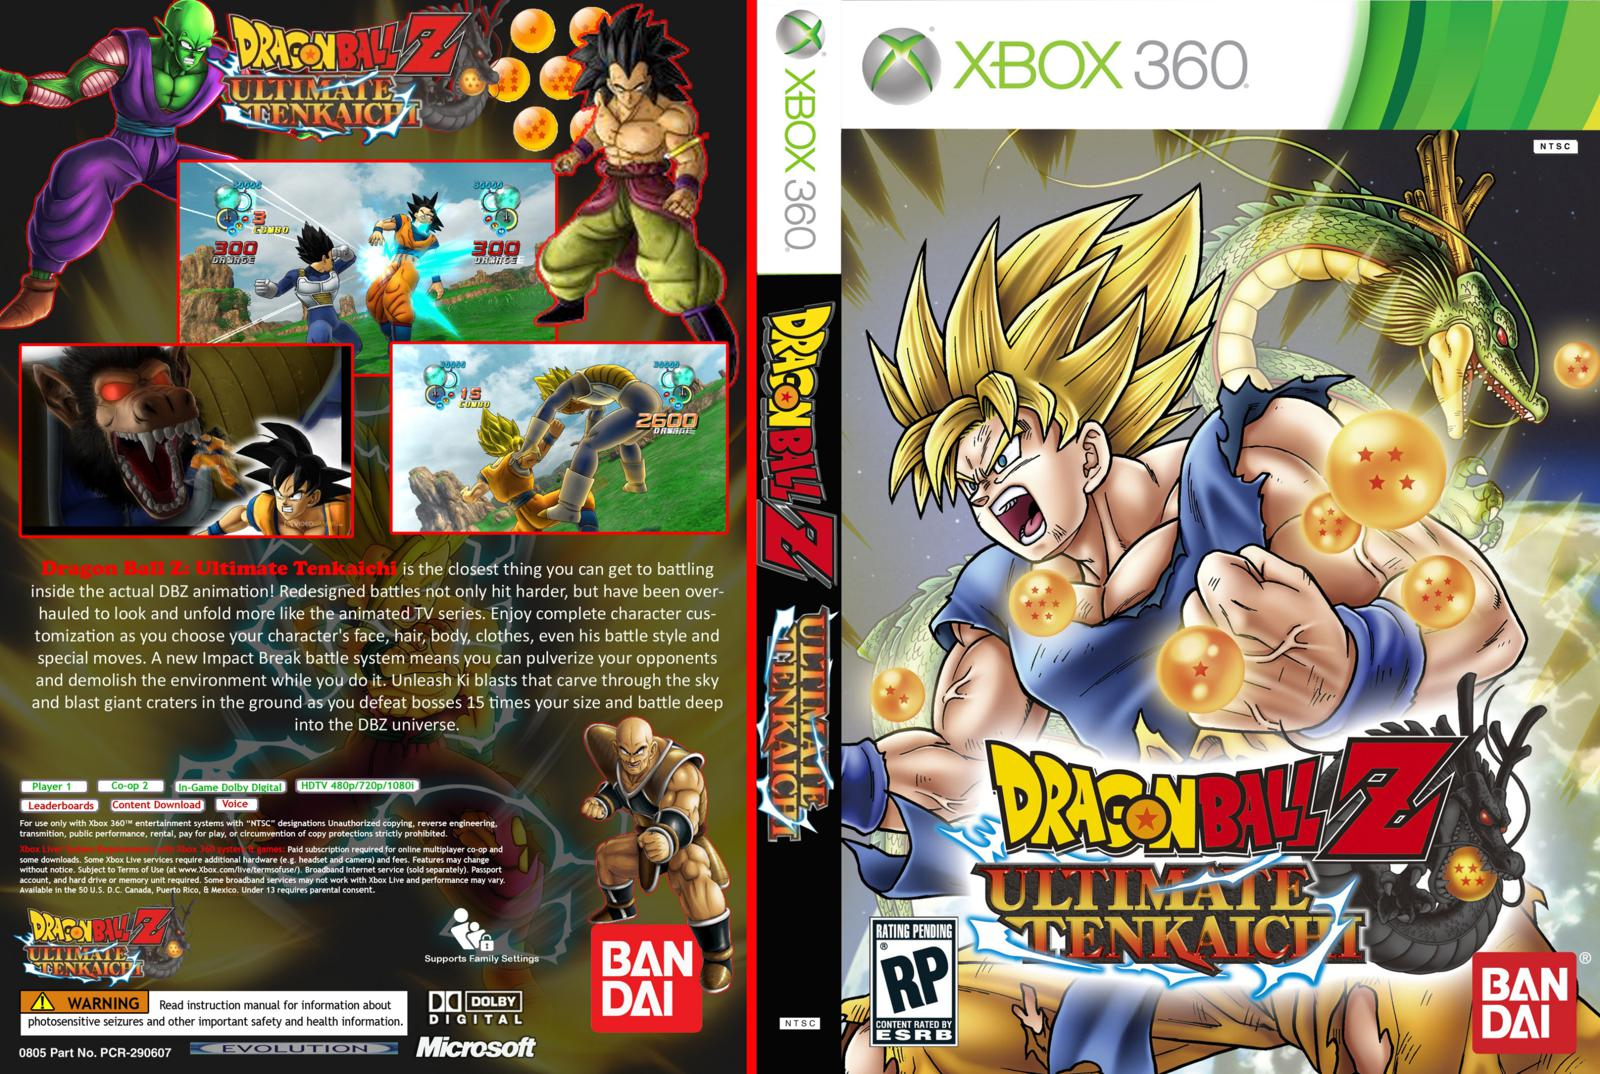 Dragon Ball Z Ultimate Tenkaichi Videos Gamespotcom | Apps Directories